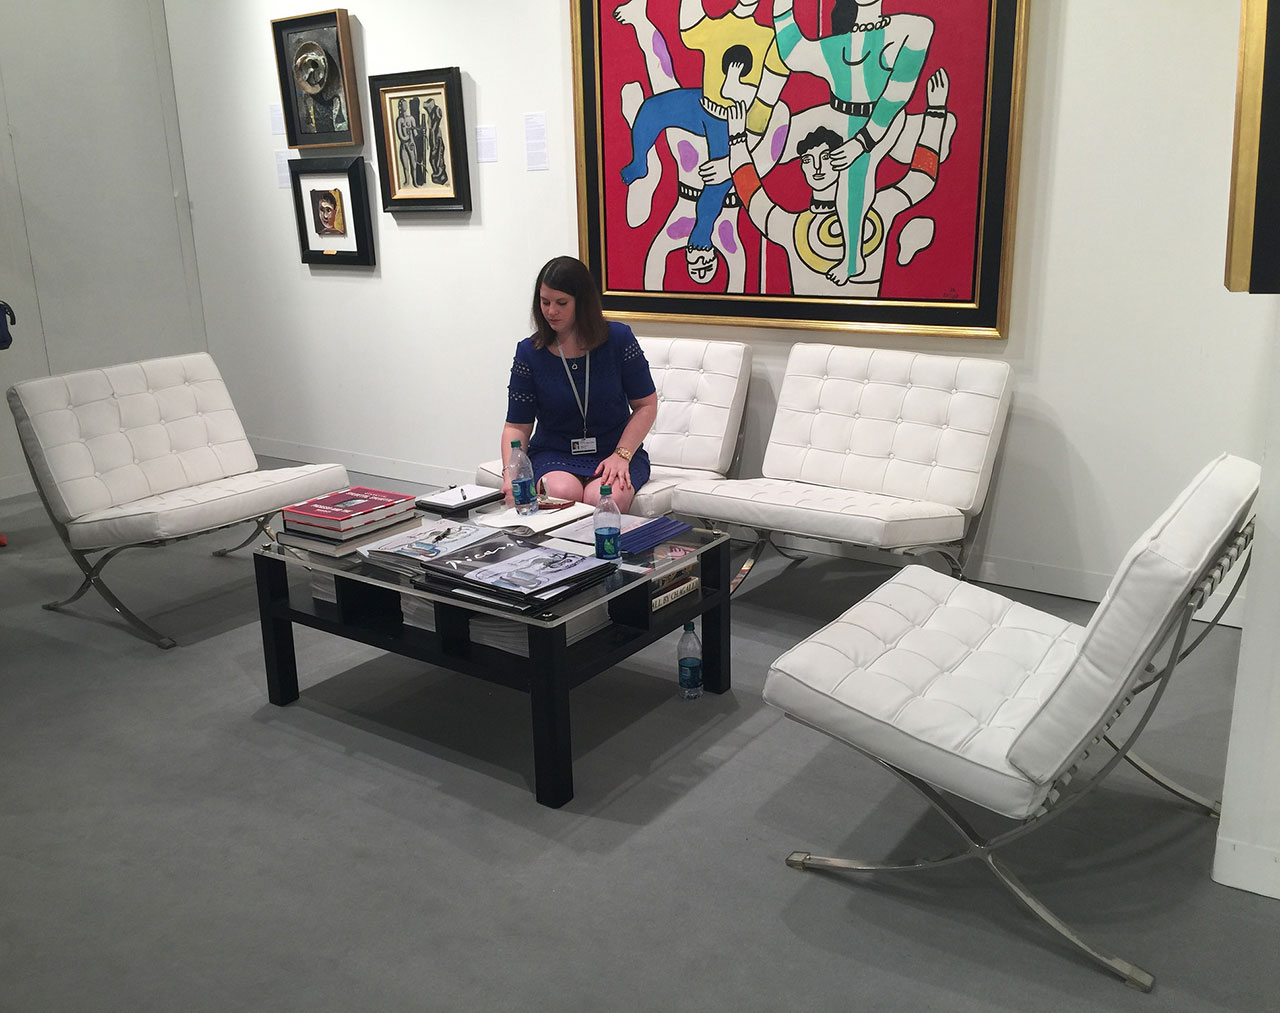 At New York's Hammer Galleries